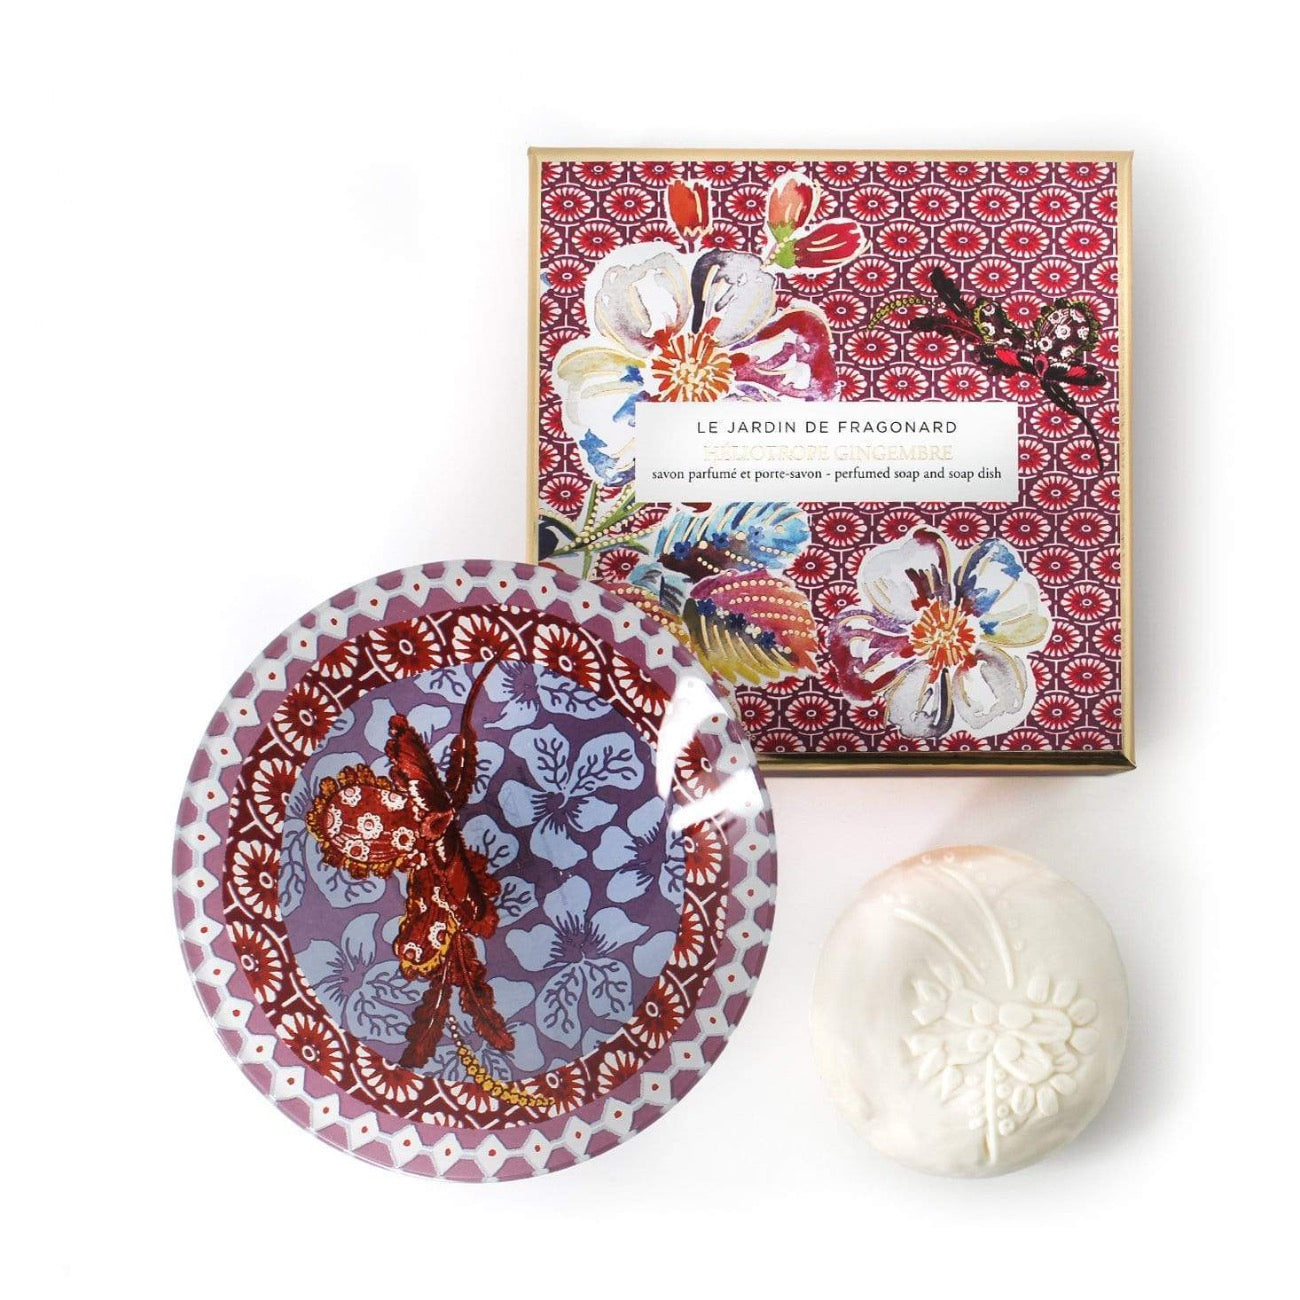 Fragonard French boxed soap and glass dish gift set, heliotrope gingembre (ginger).